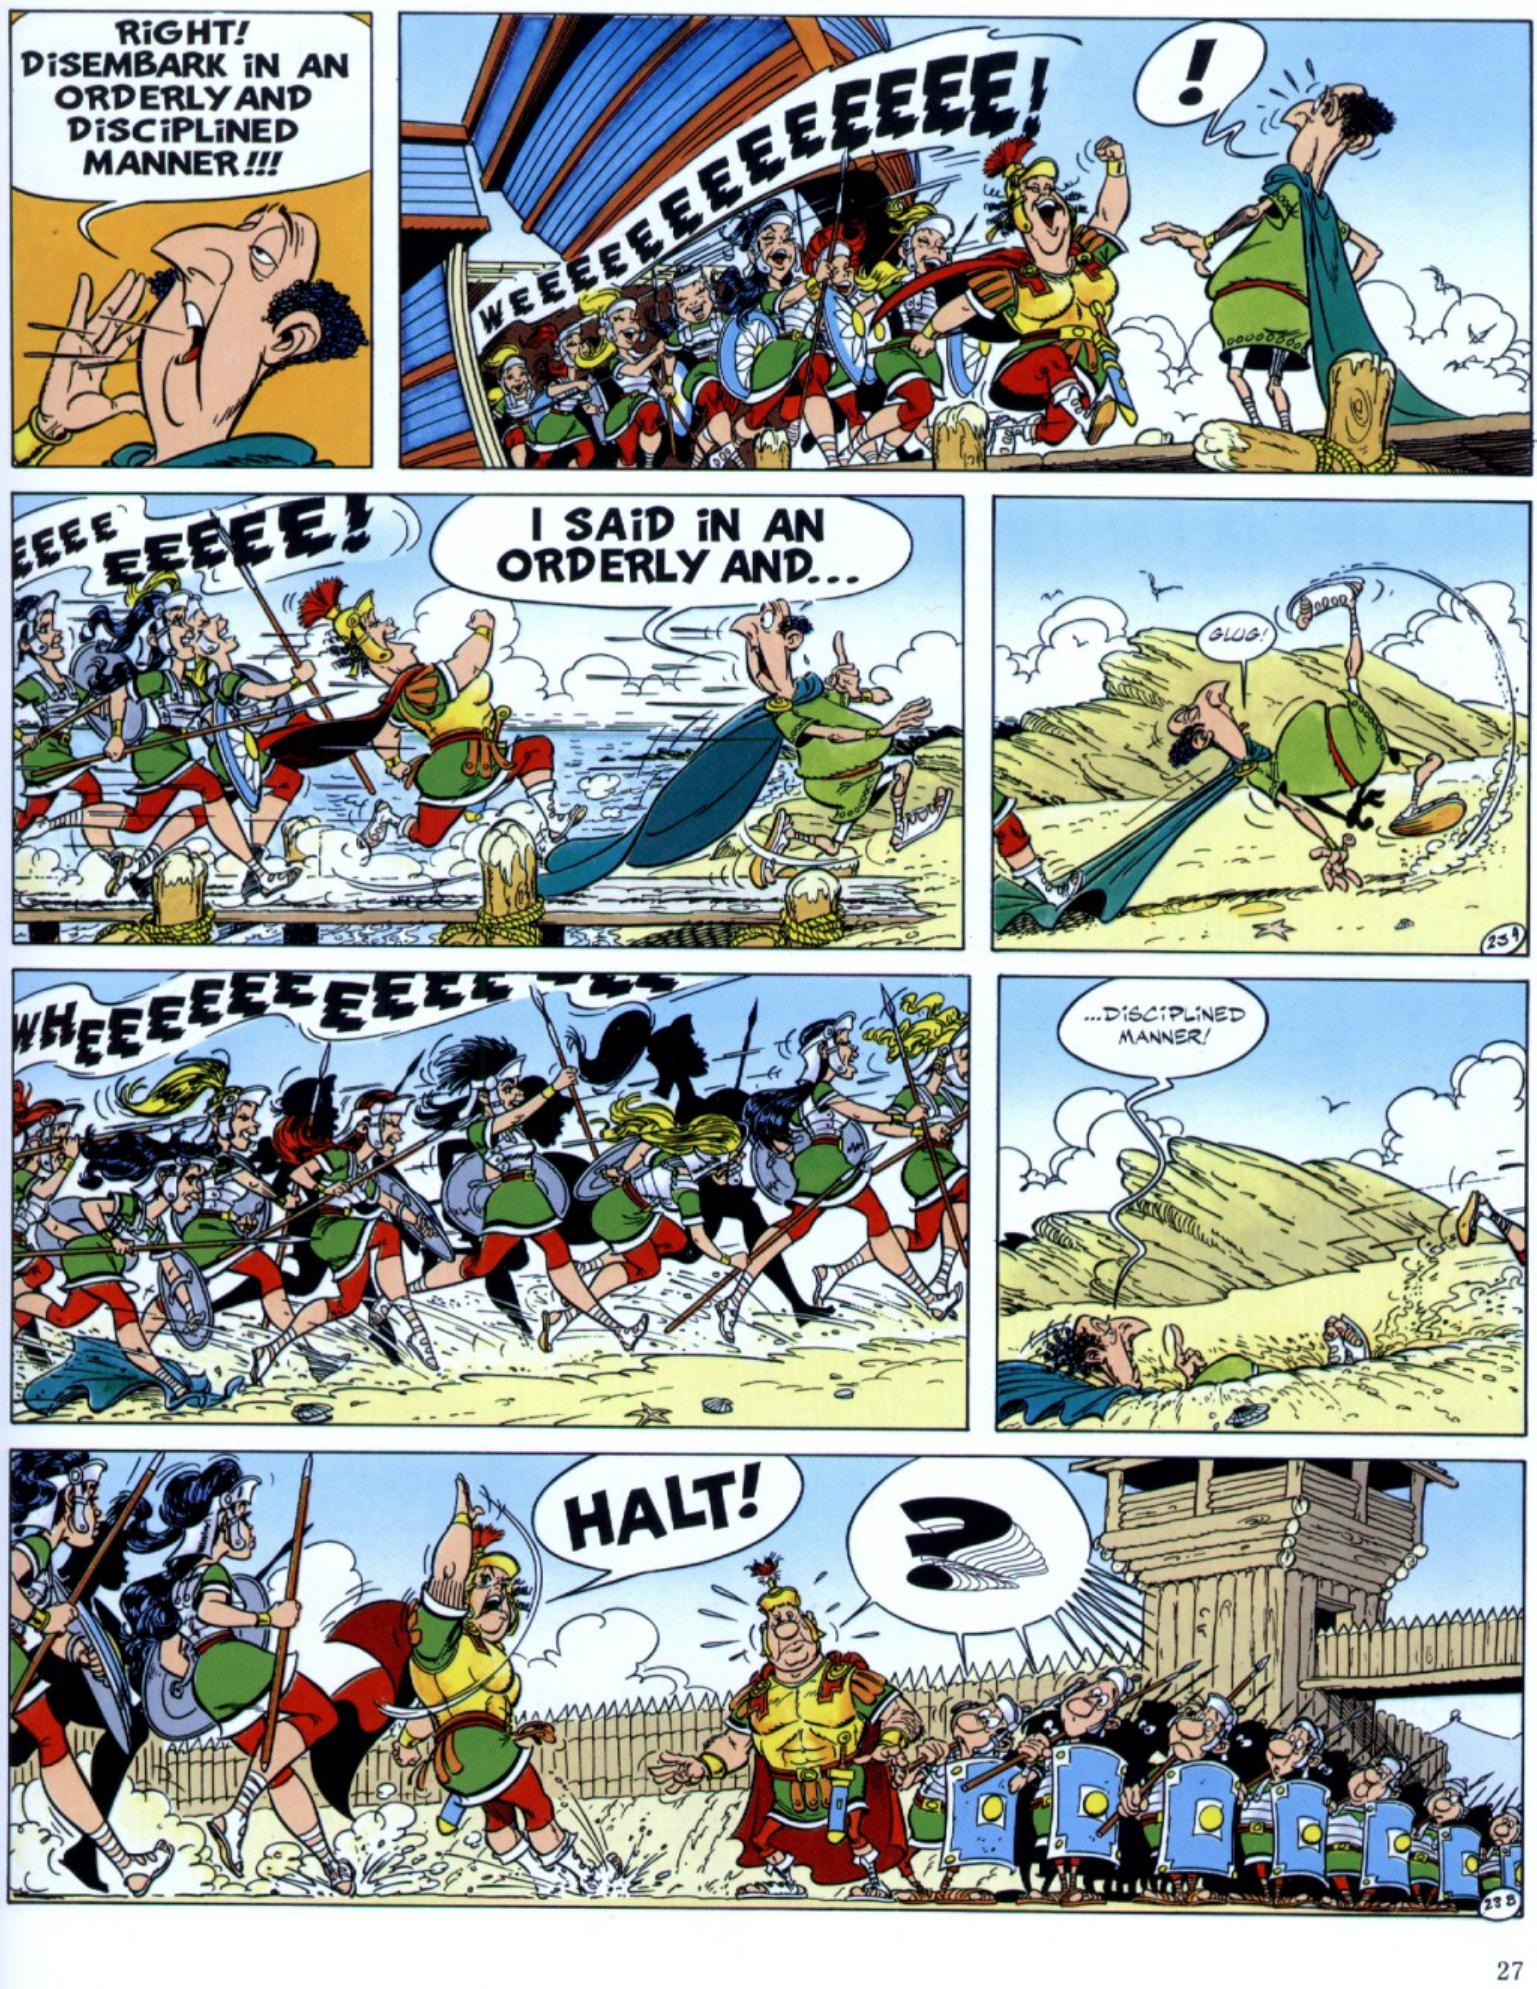 Read online Asterix comic -  Issue #29 - 25